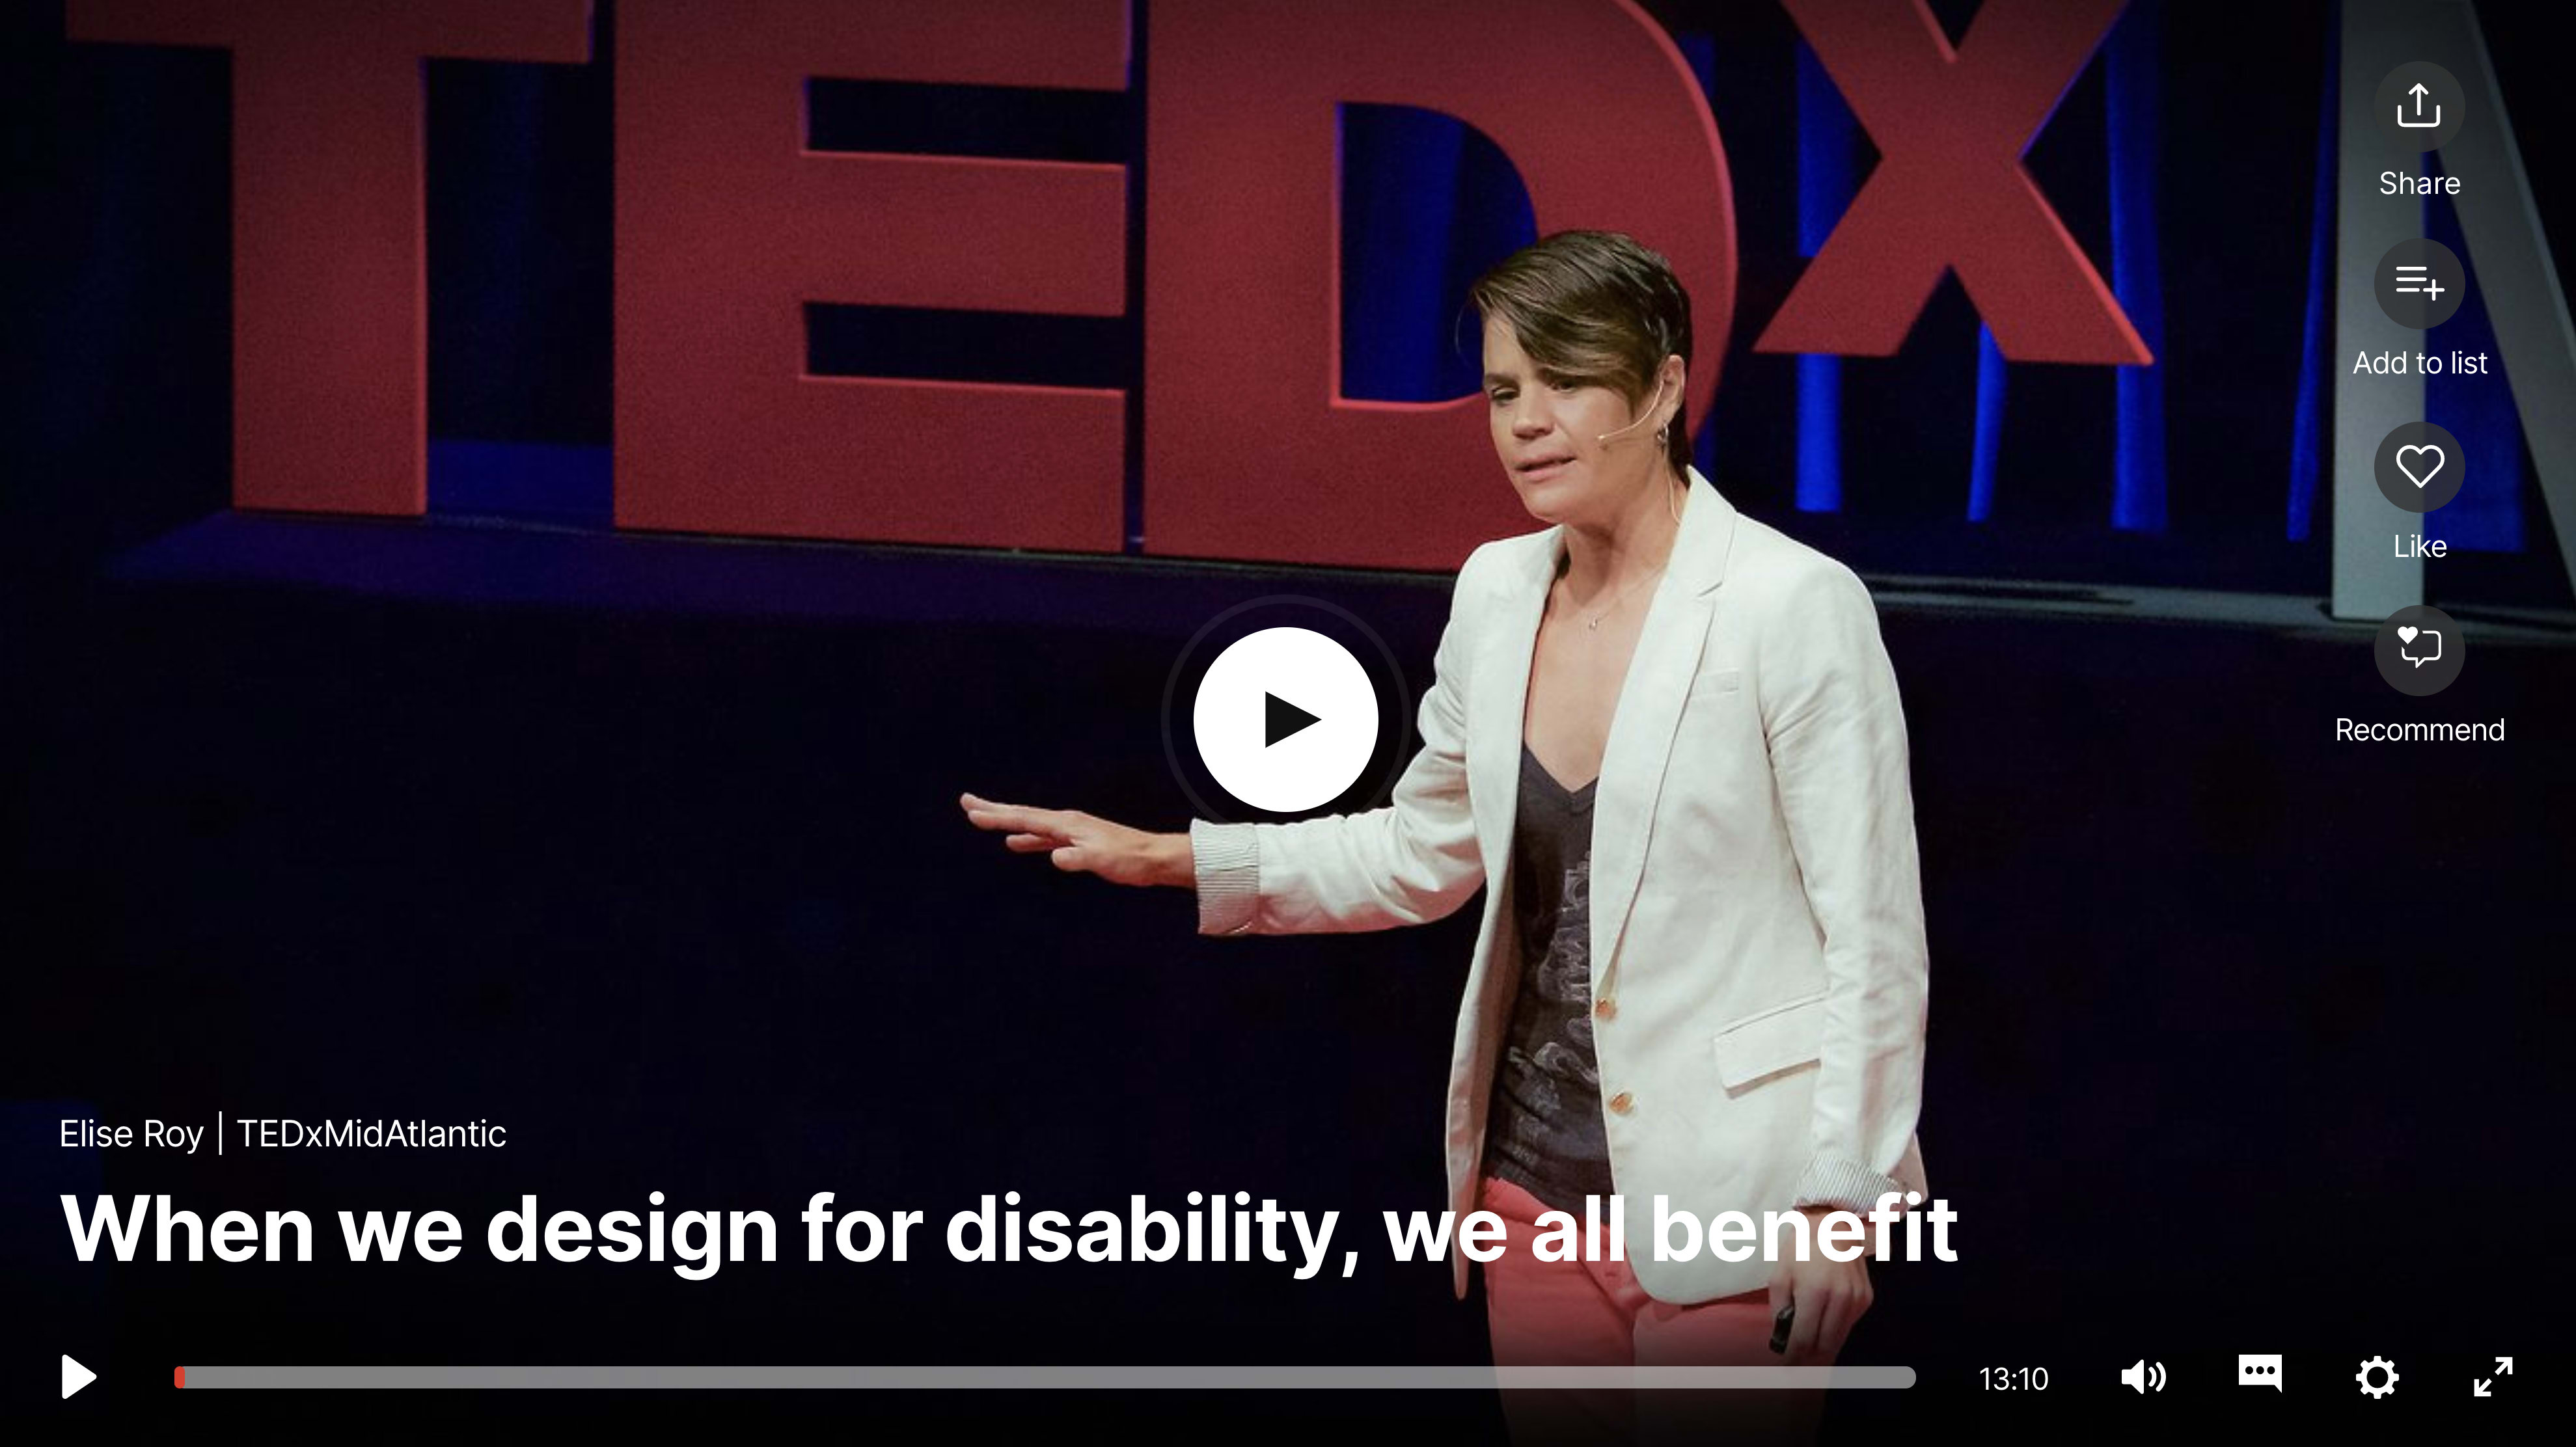 A thumbnail of the video for a TED talk by designer Elise Roy.